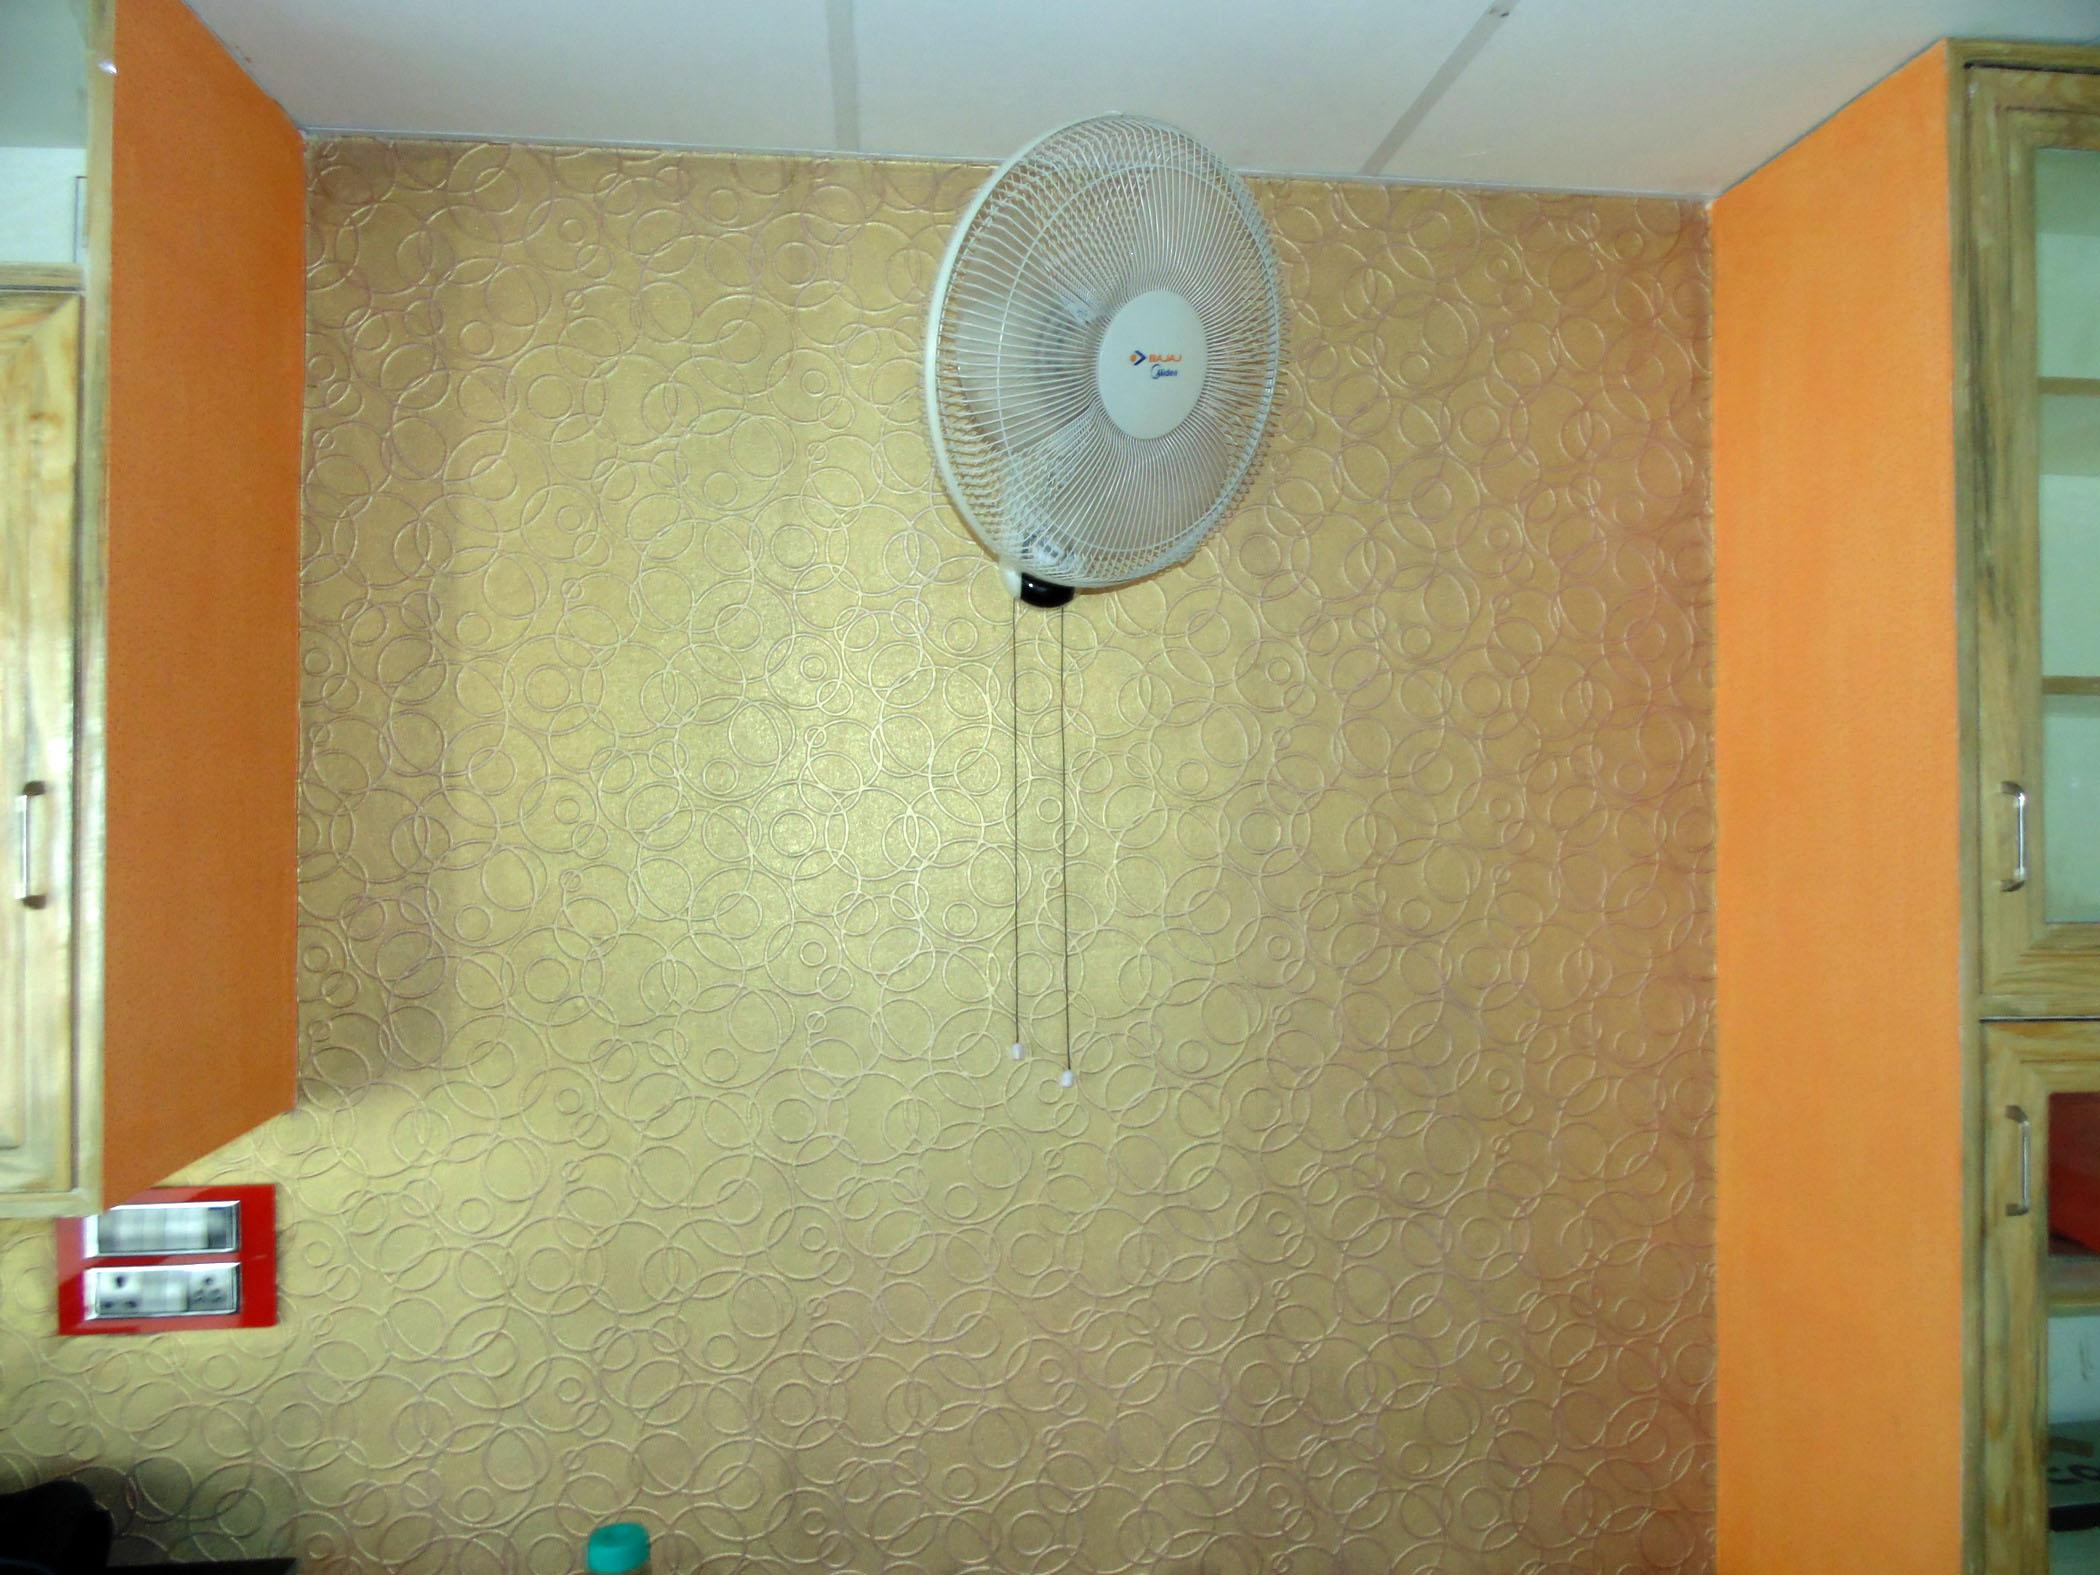 Textured Wall Paper with Golde....